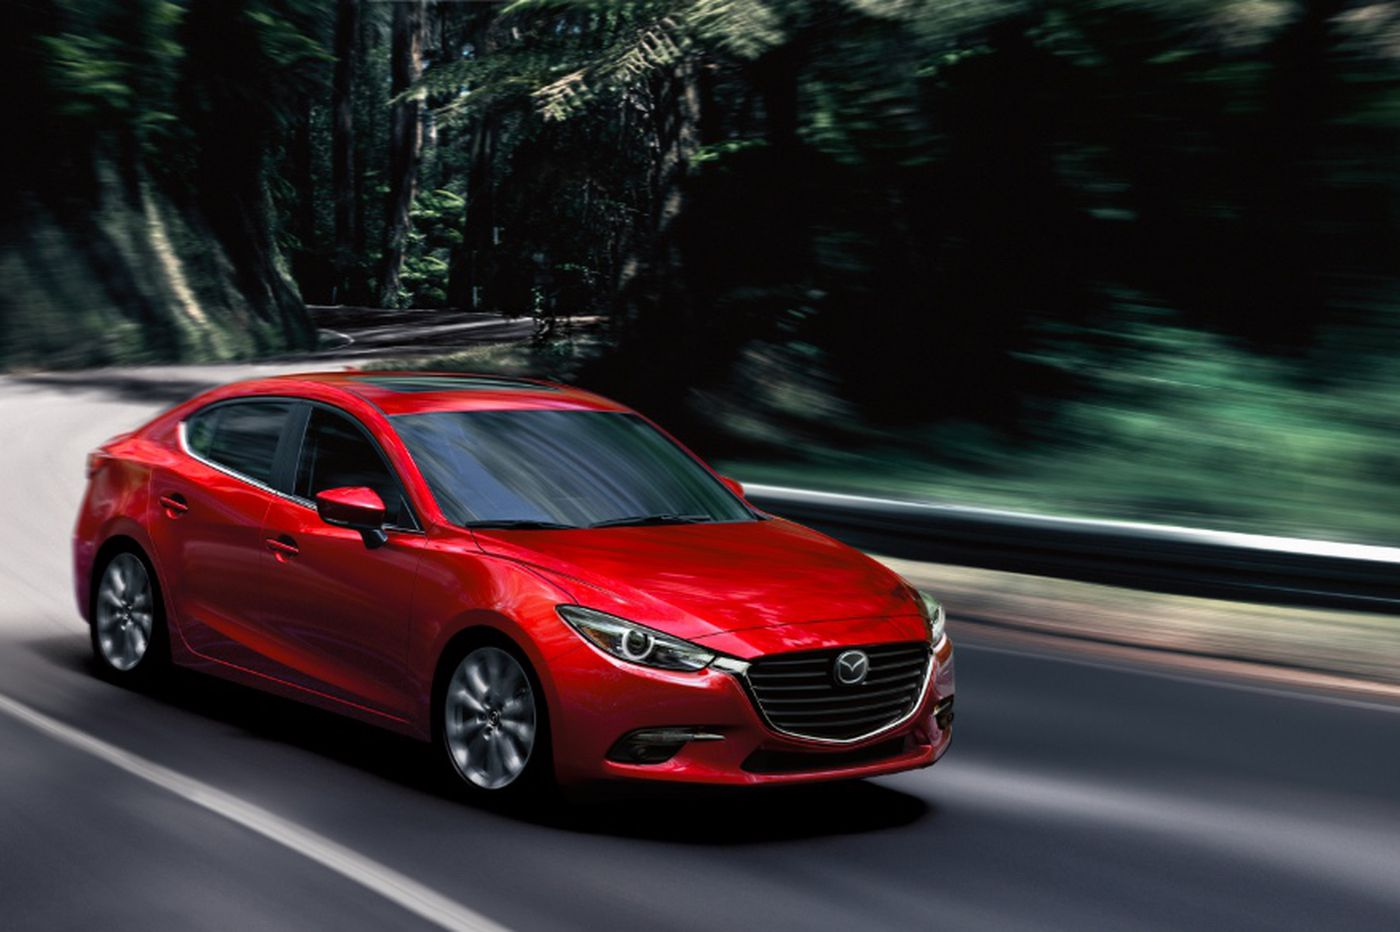 Before the big changeover, a last look at the 2018 Mazda3